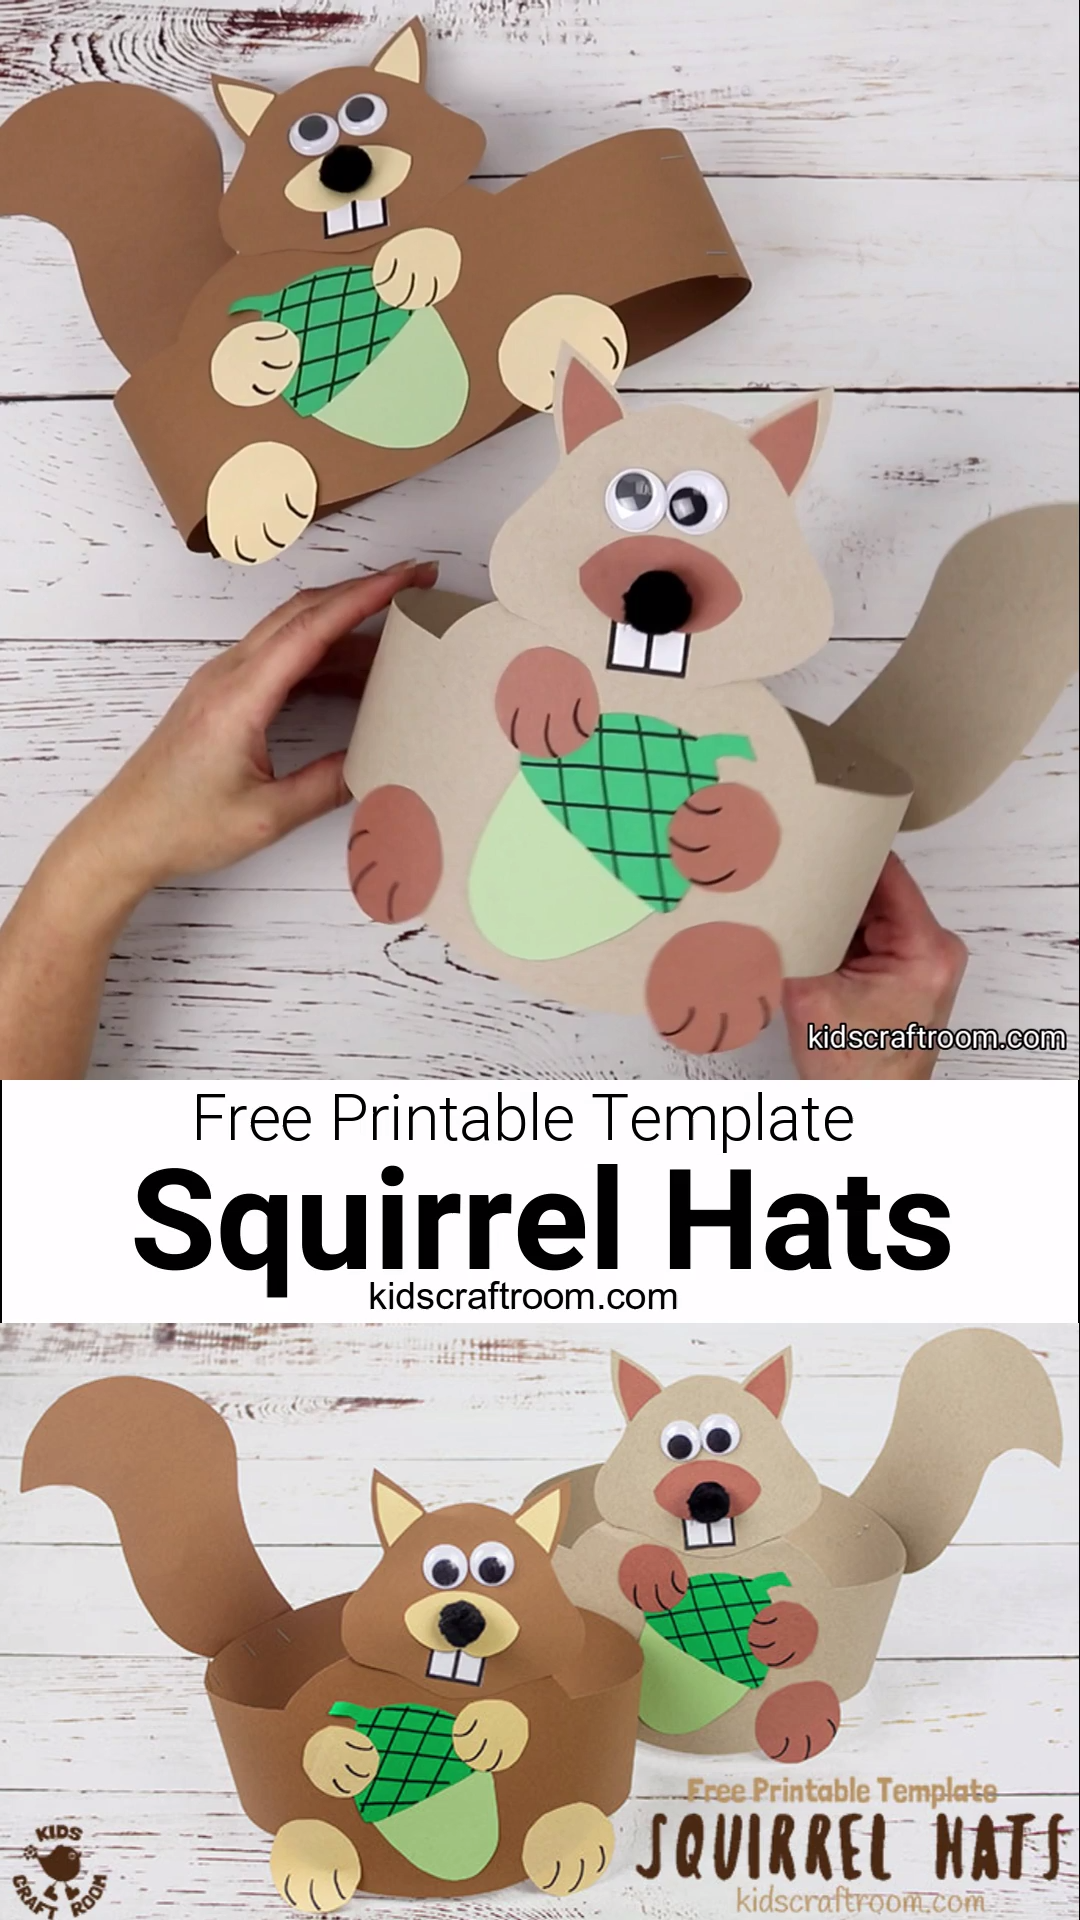 Squirrel Hat Craft This free printable Squirrel Hat Craft is adorable! Print the template